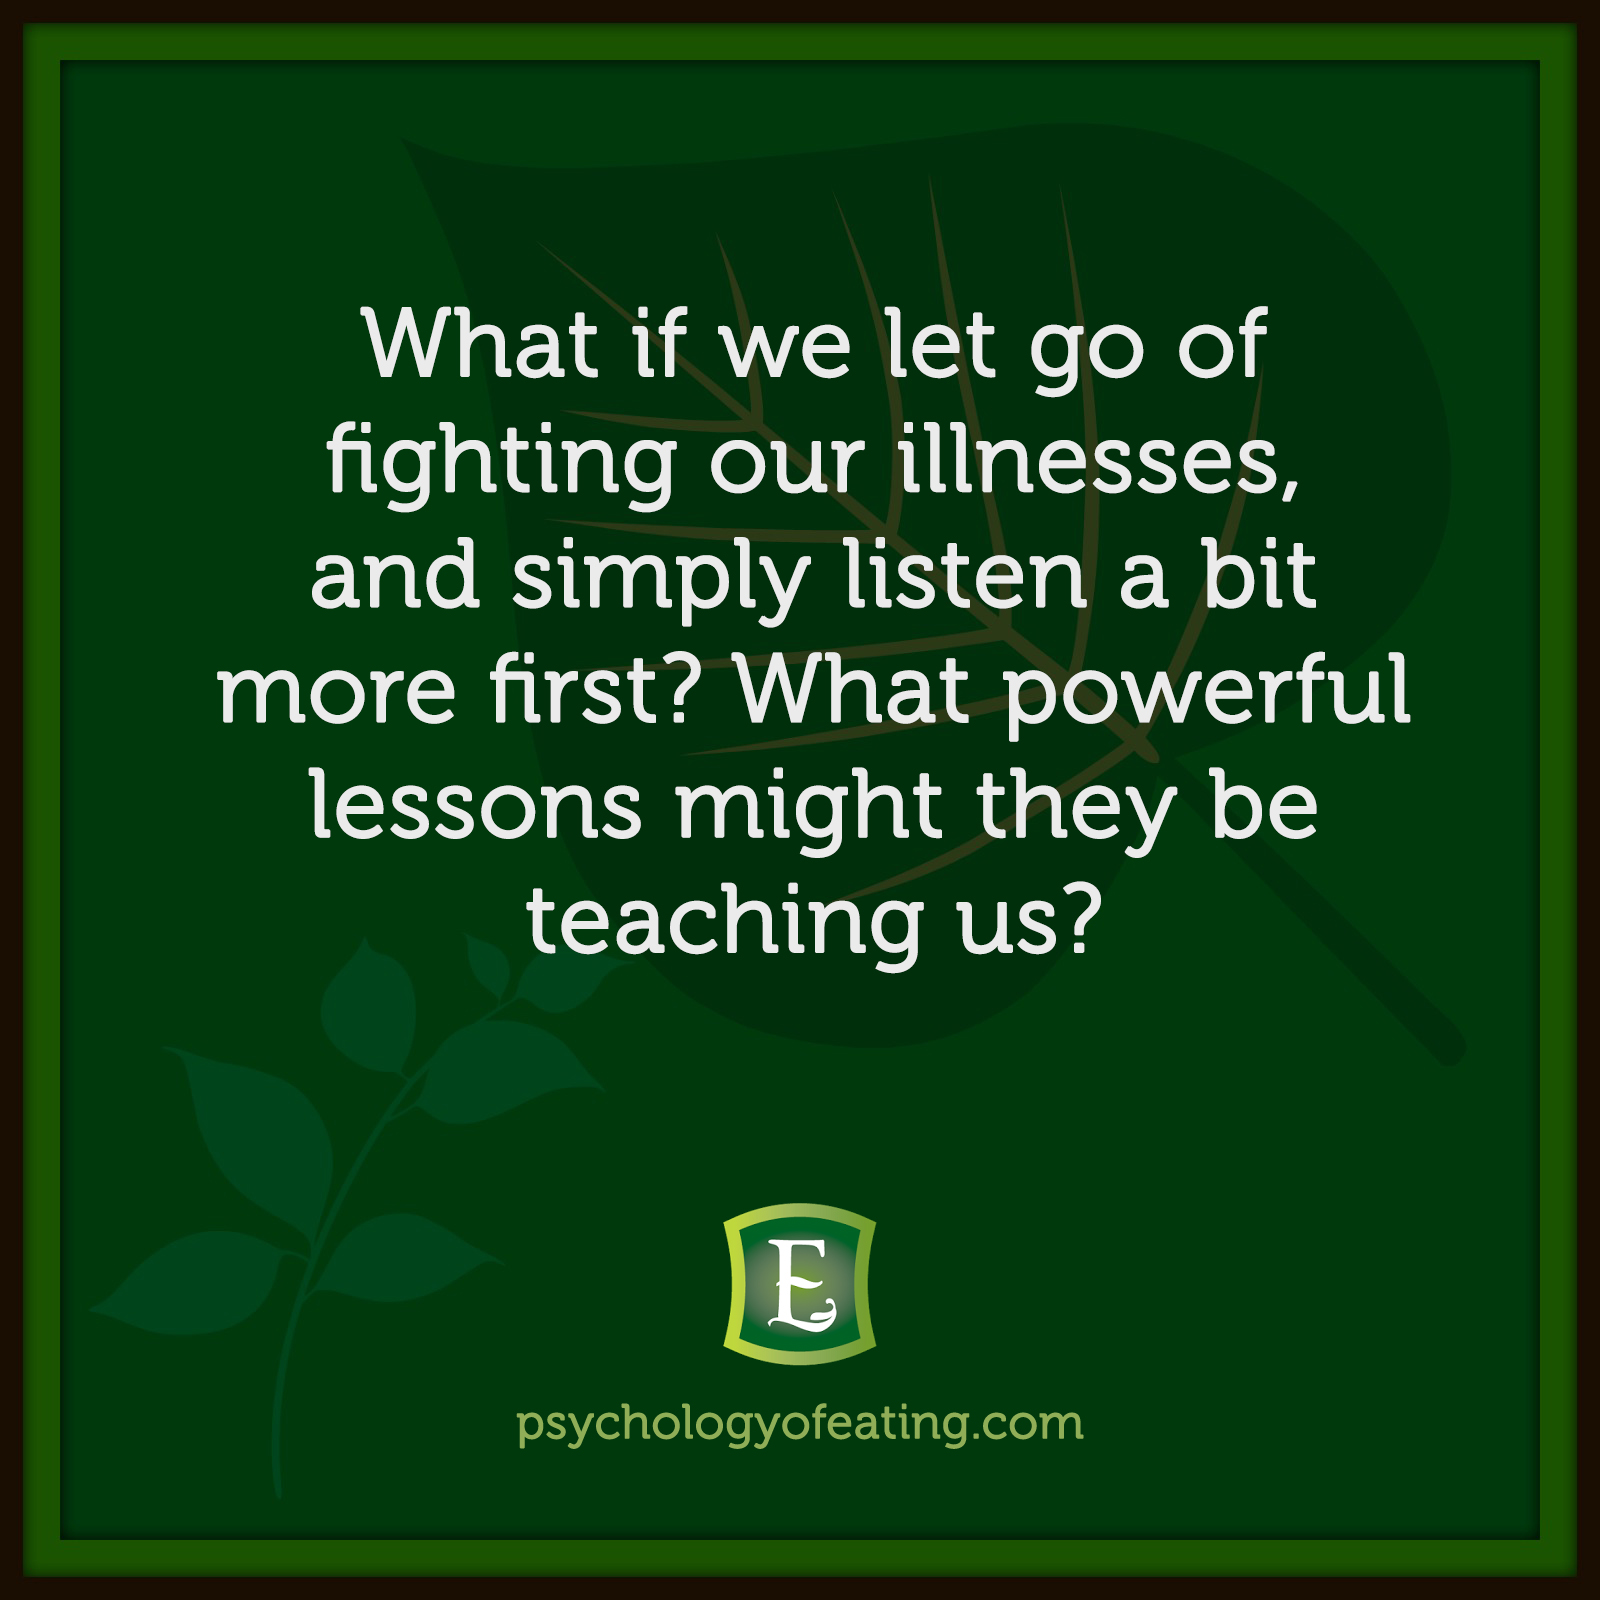 What if we let go of fighting our illnesses, and simply listen a bit more first? What powerful lessons might they be teaching us?   #health #nutrition #eatingpsychology #IPE